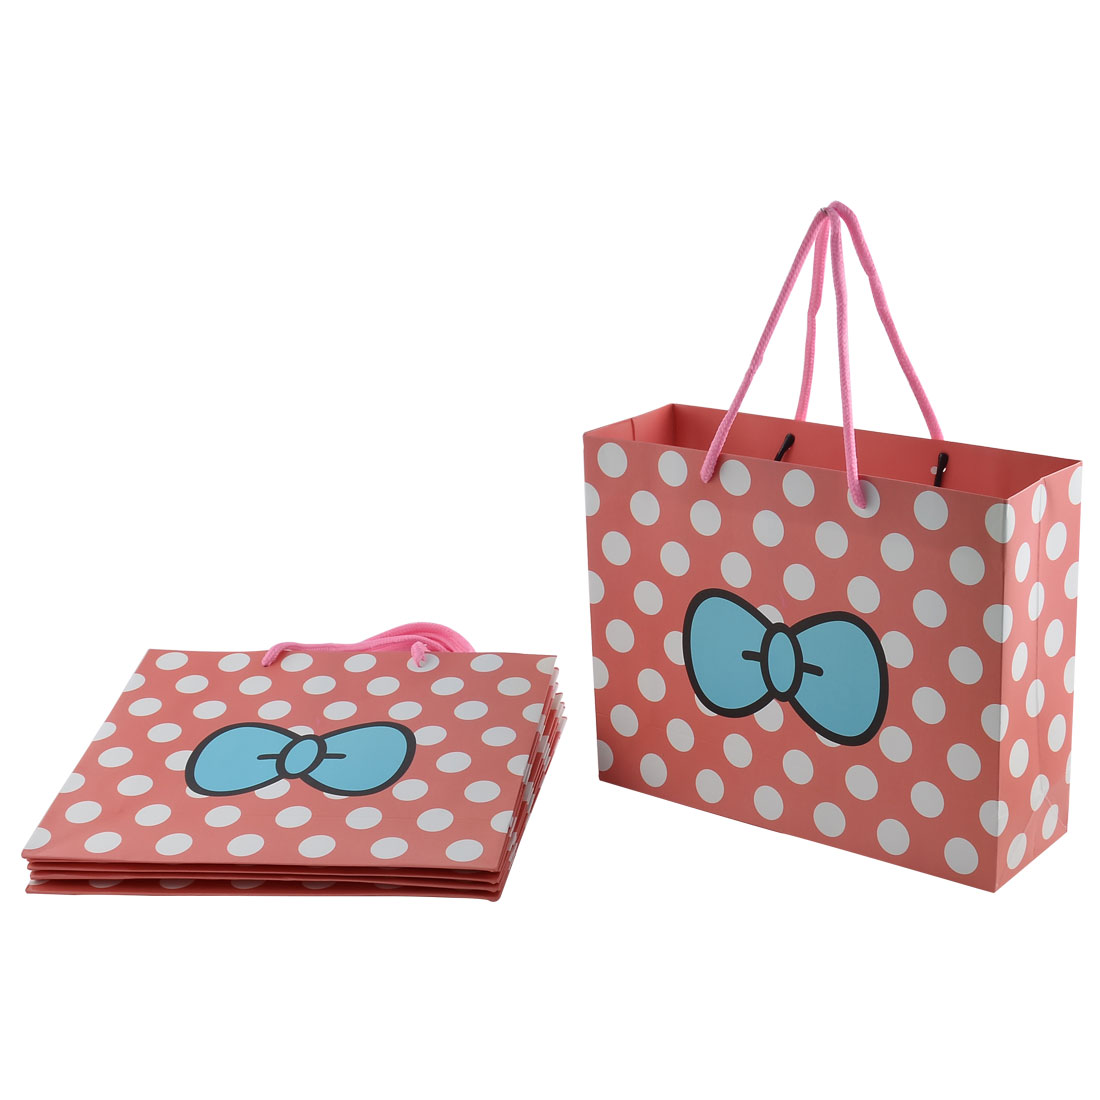 Paper White Dots Bowknot Pattern Birthday Gift Bags Holder Pink 6pcs